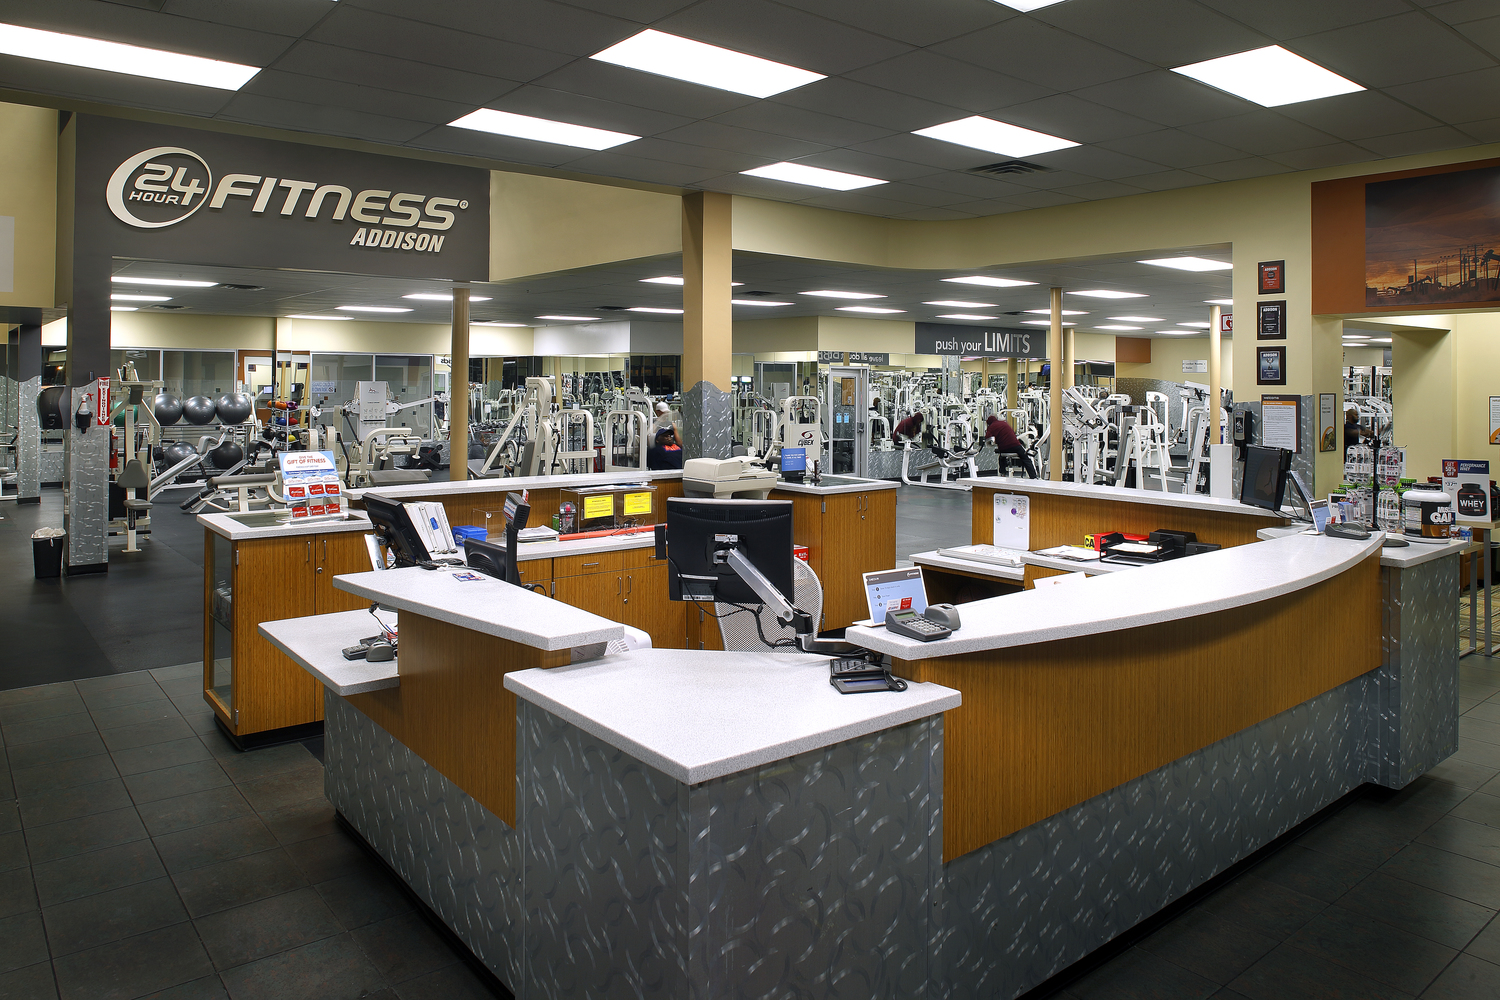 24 Hour Fitness  |  Addison, TX  General Contractor:  Raymond Construction